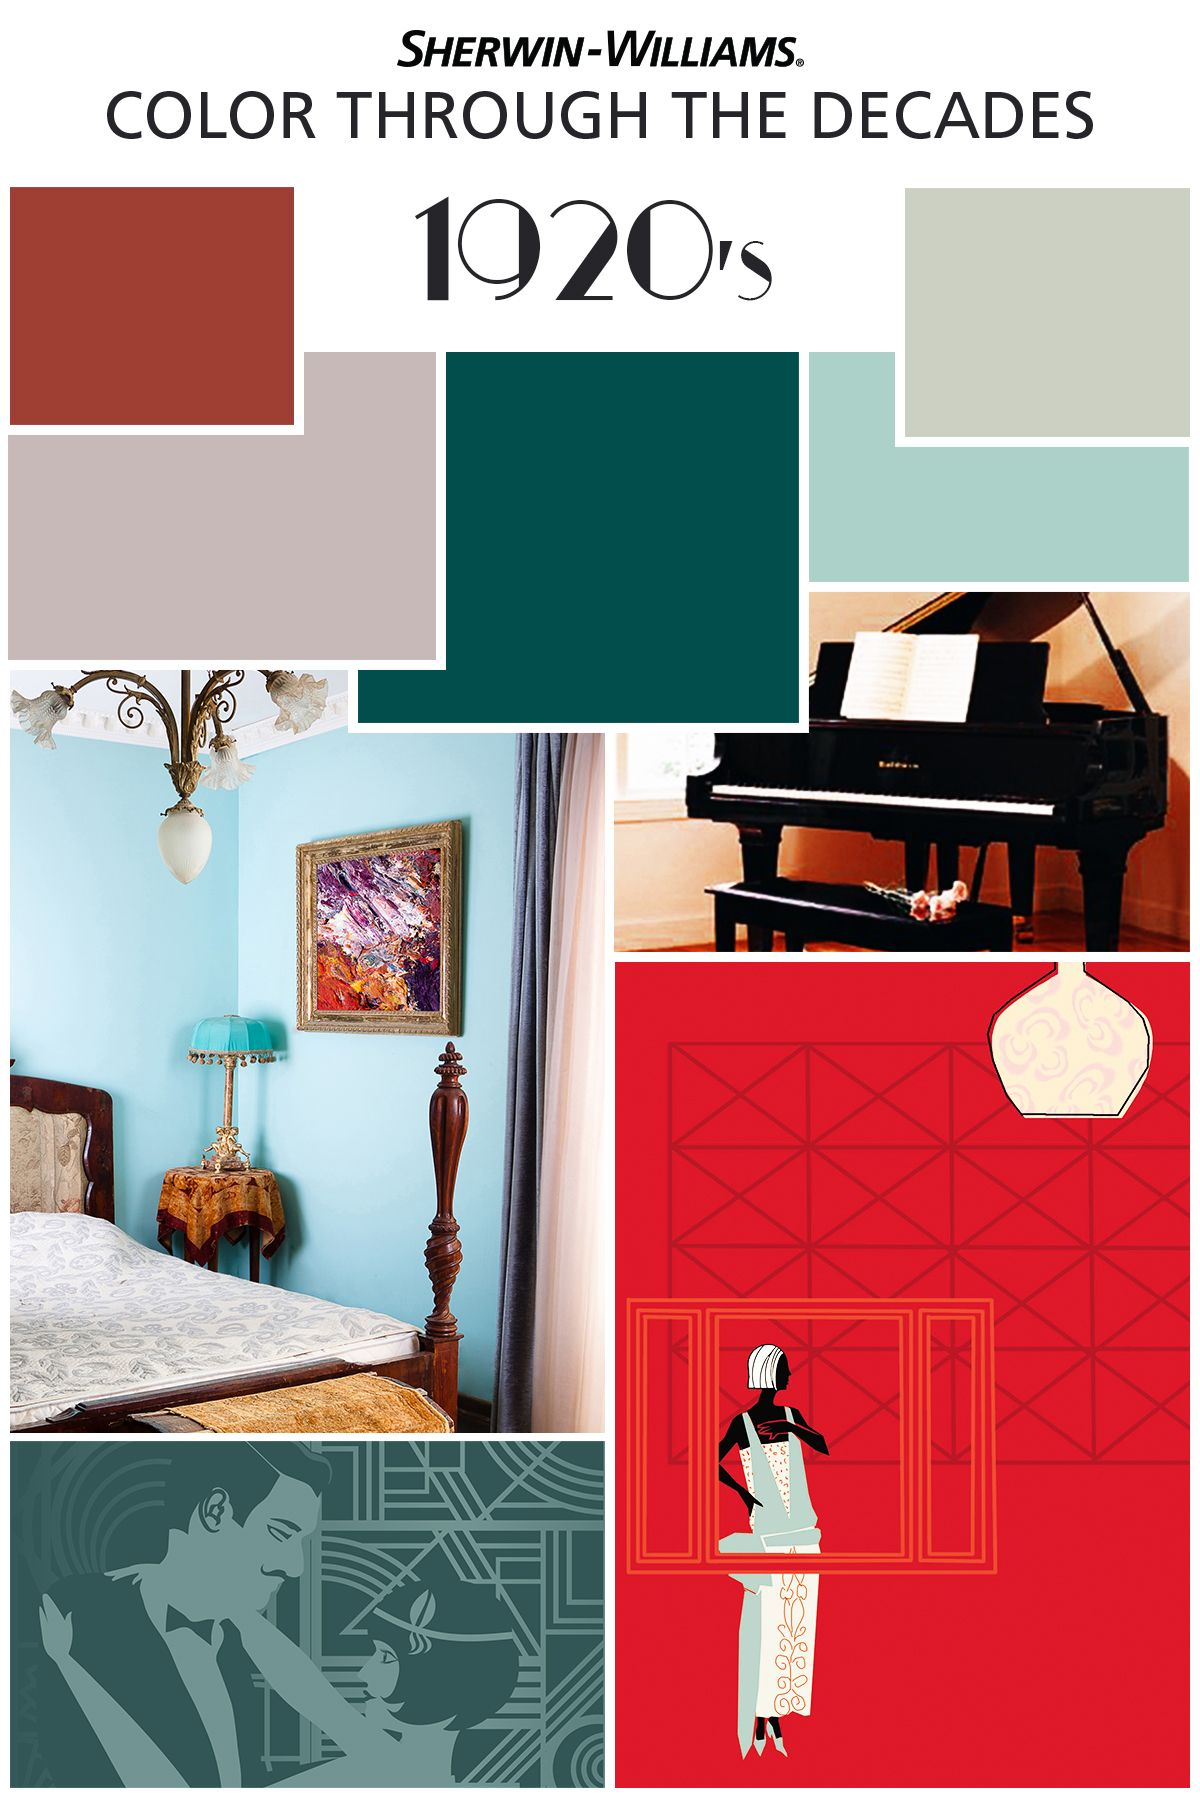 Folks preferred to jazz up their style during the jazz age of the 1920s while wall colors generally stayed neutral accents and decor brought drama to